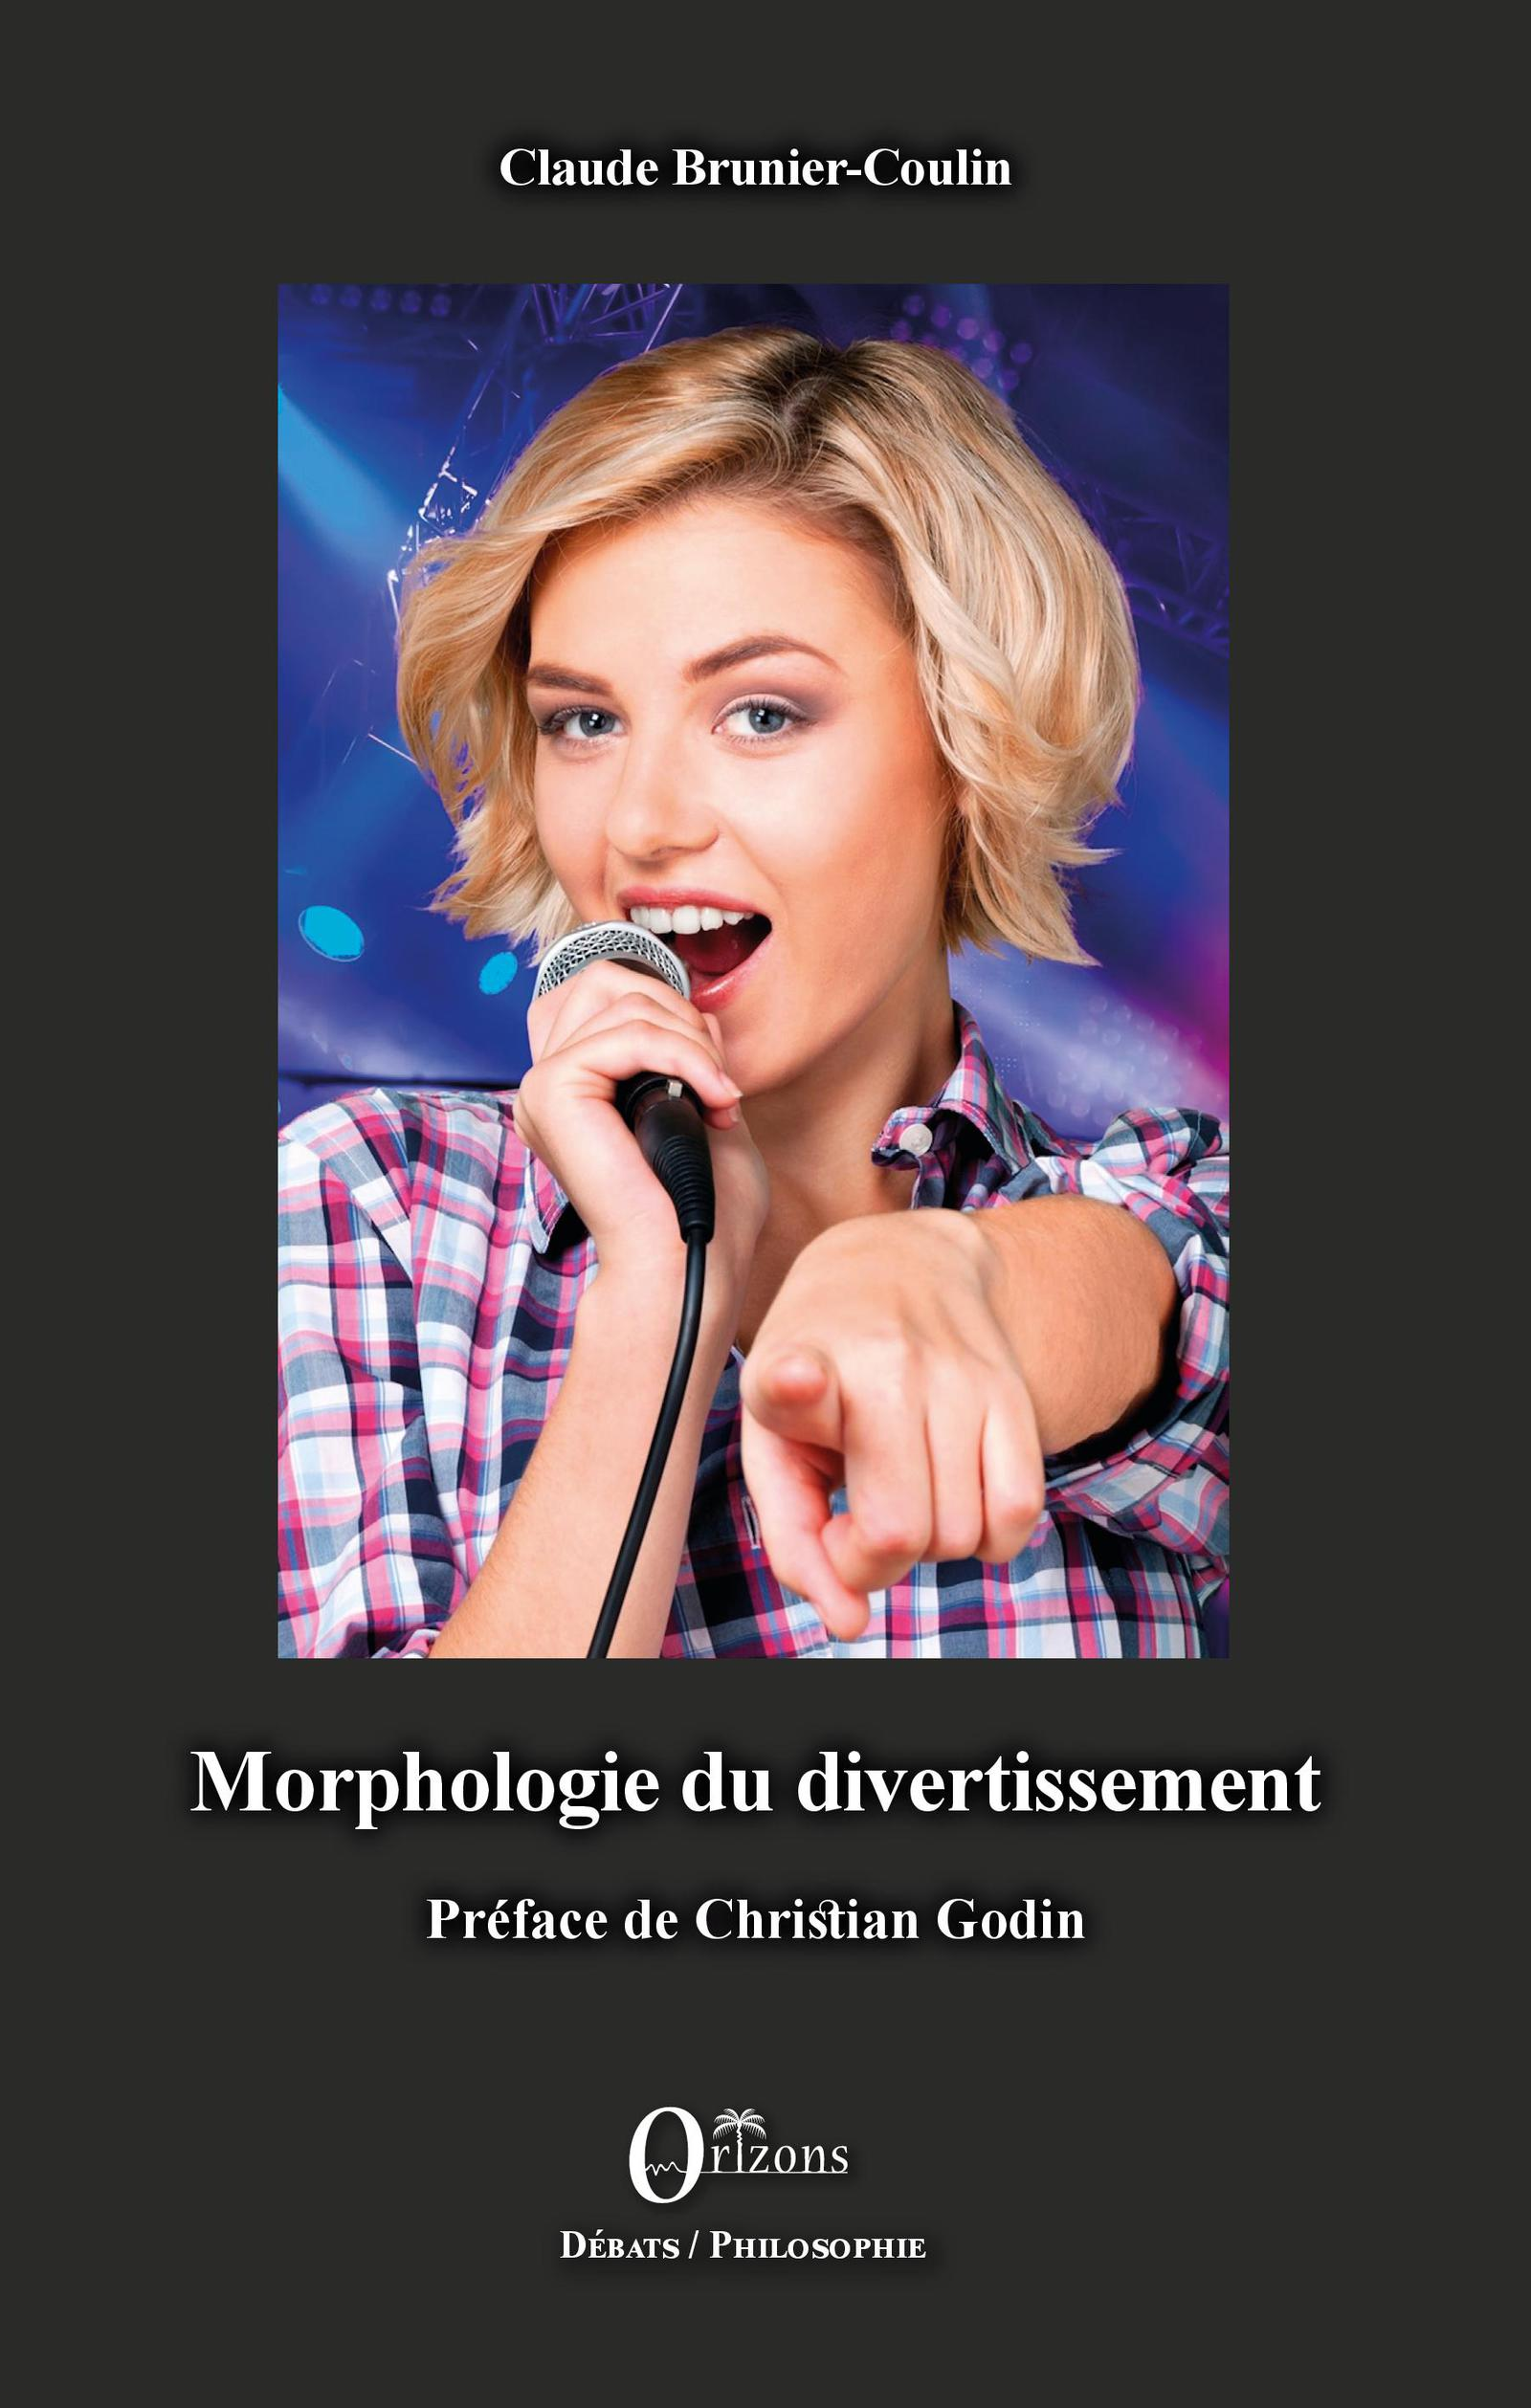 Morphologie du divertissement